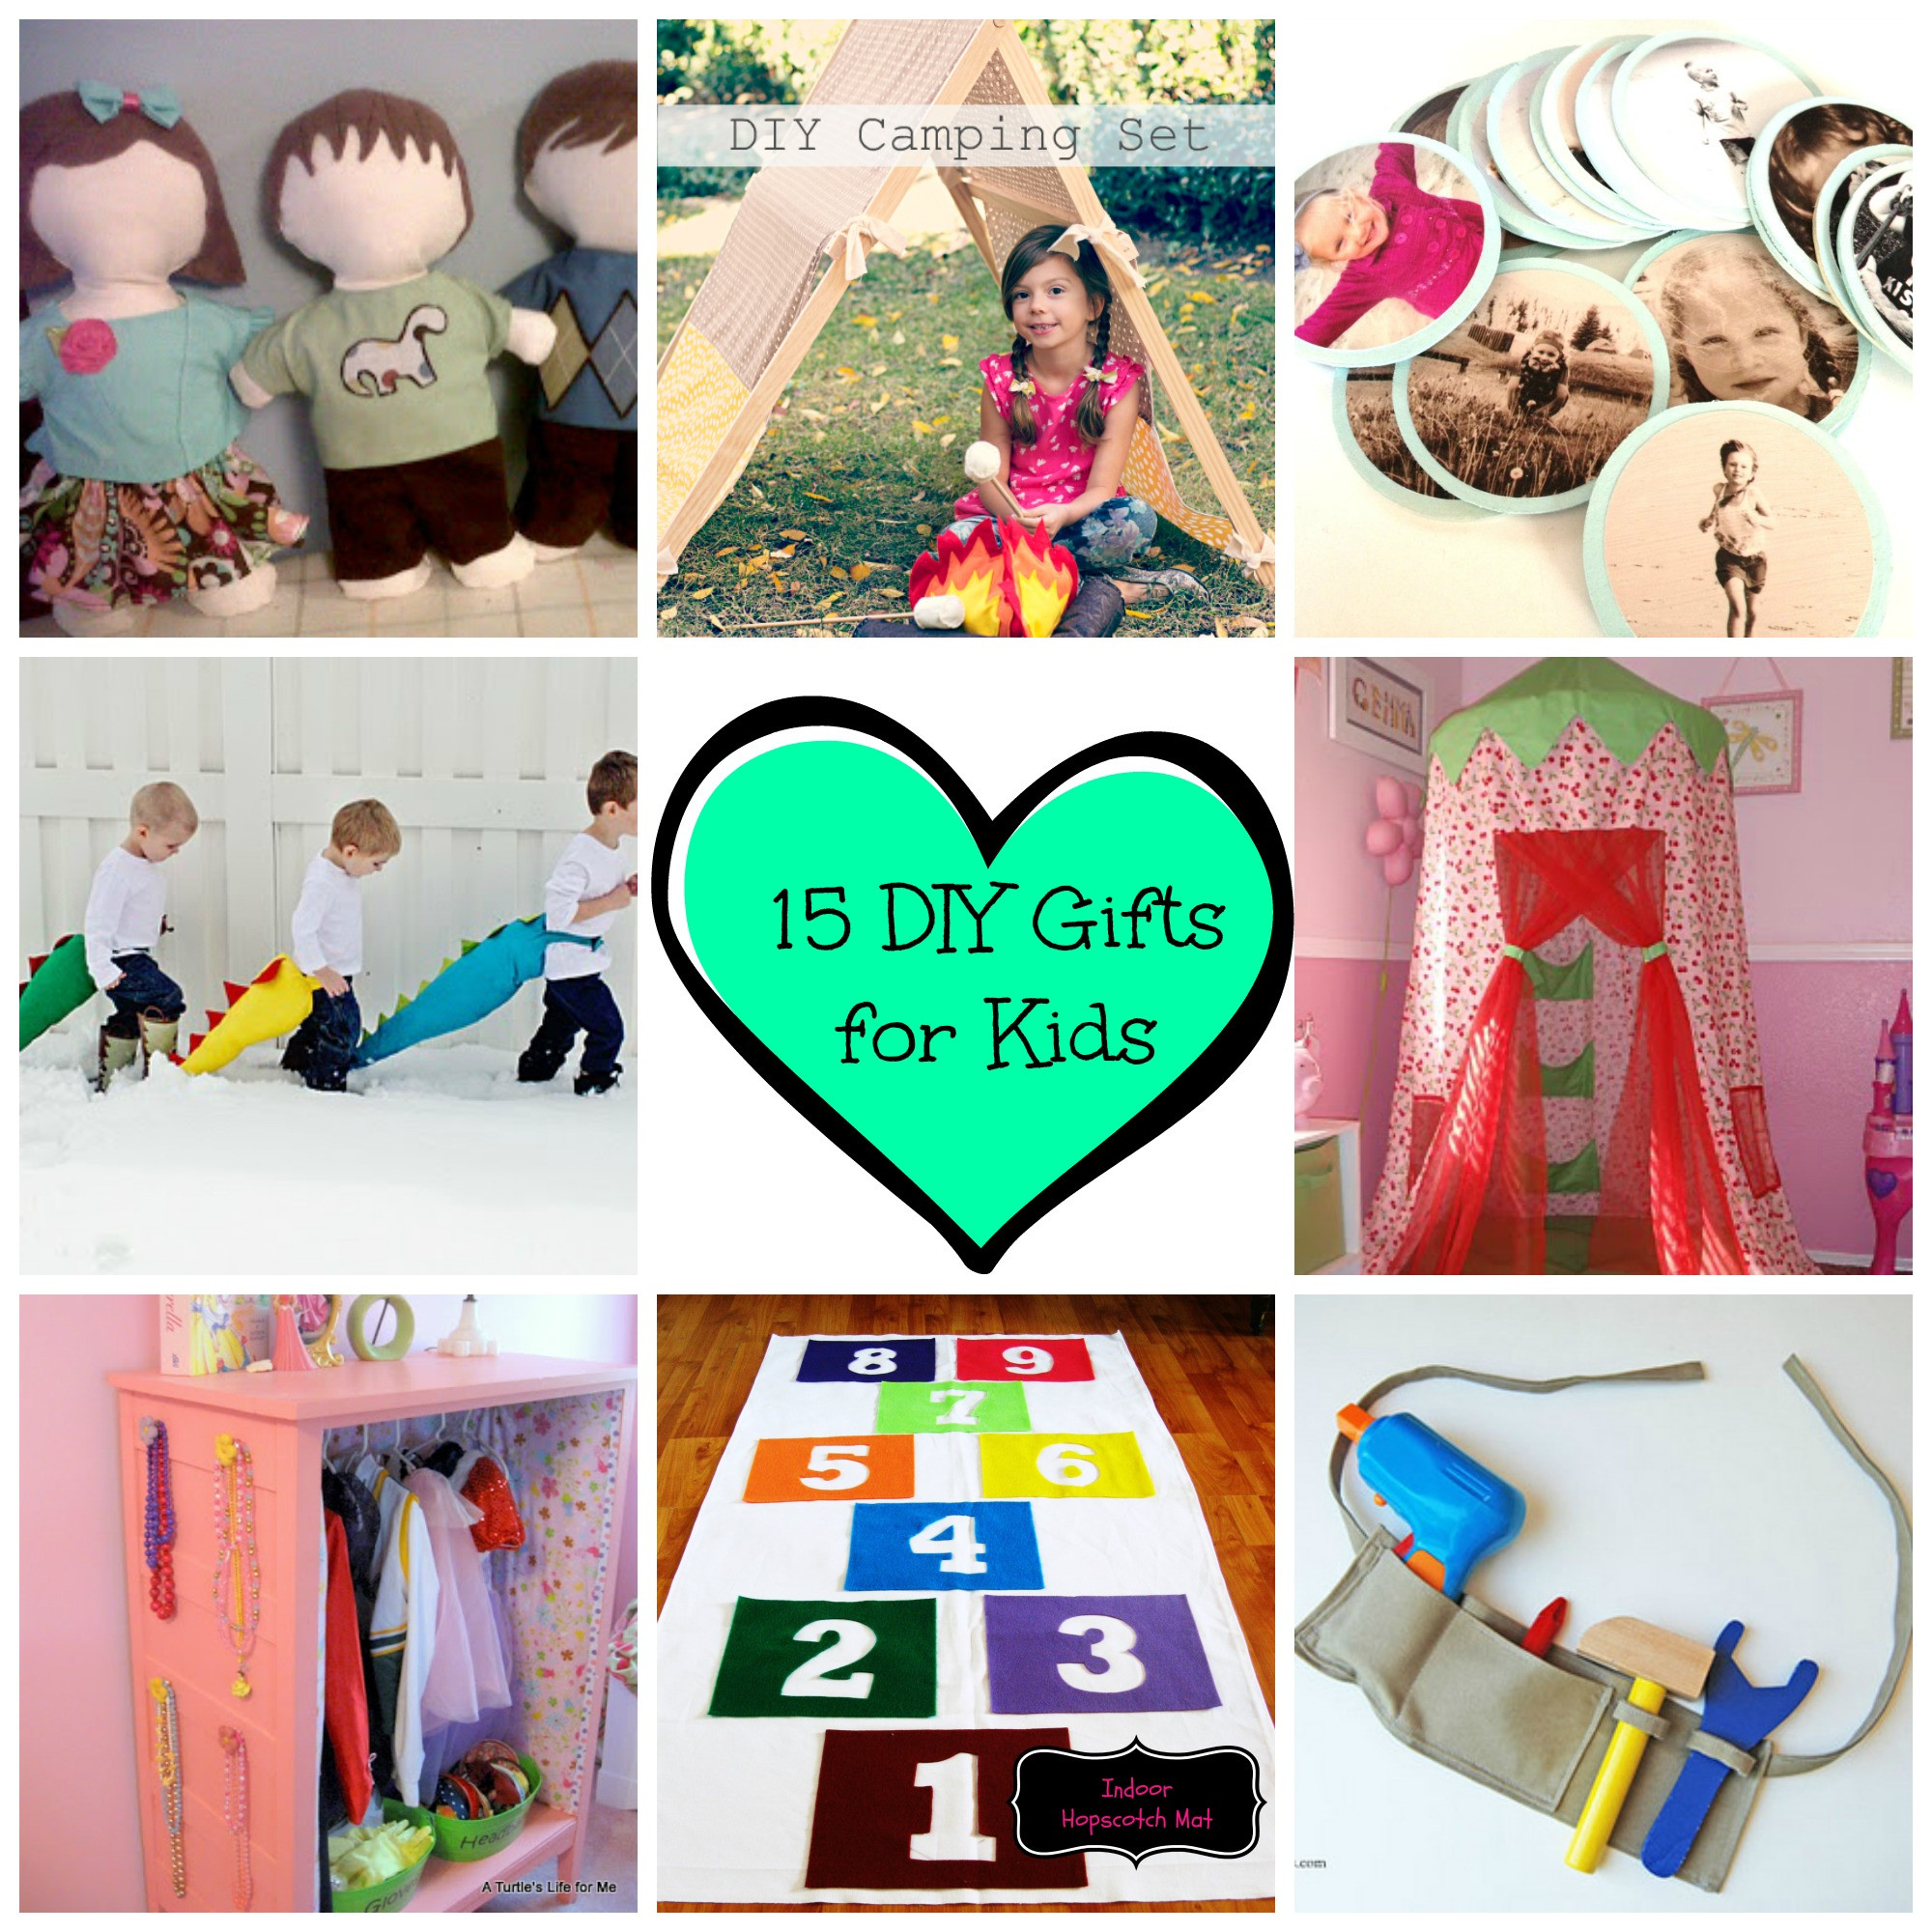 Best ideas about DIY Gift Ideas For Kids . Save or Pin 15 Great DIY Kids Gifts – Somewhere in the Middle Now.